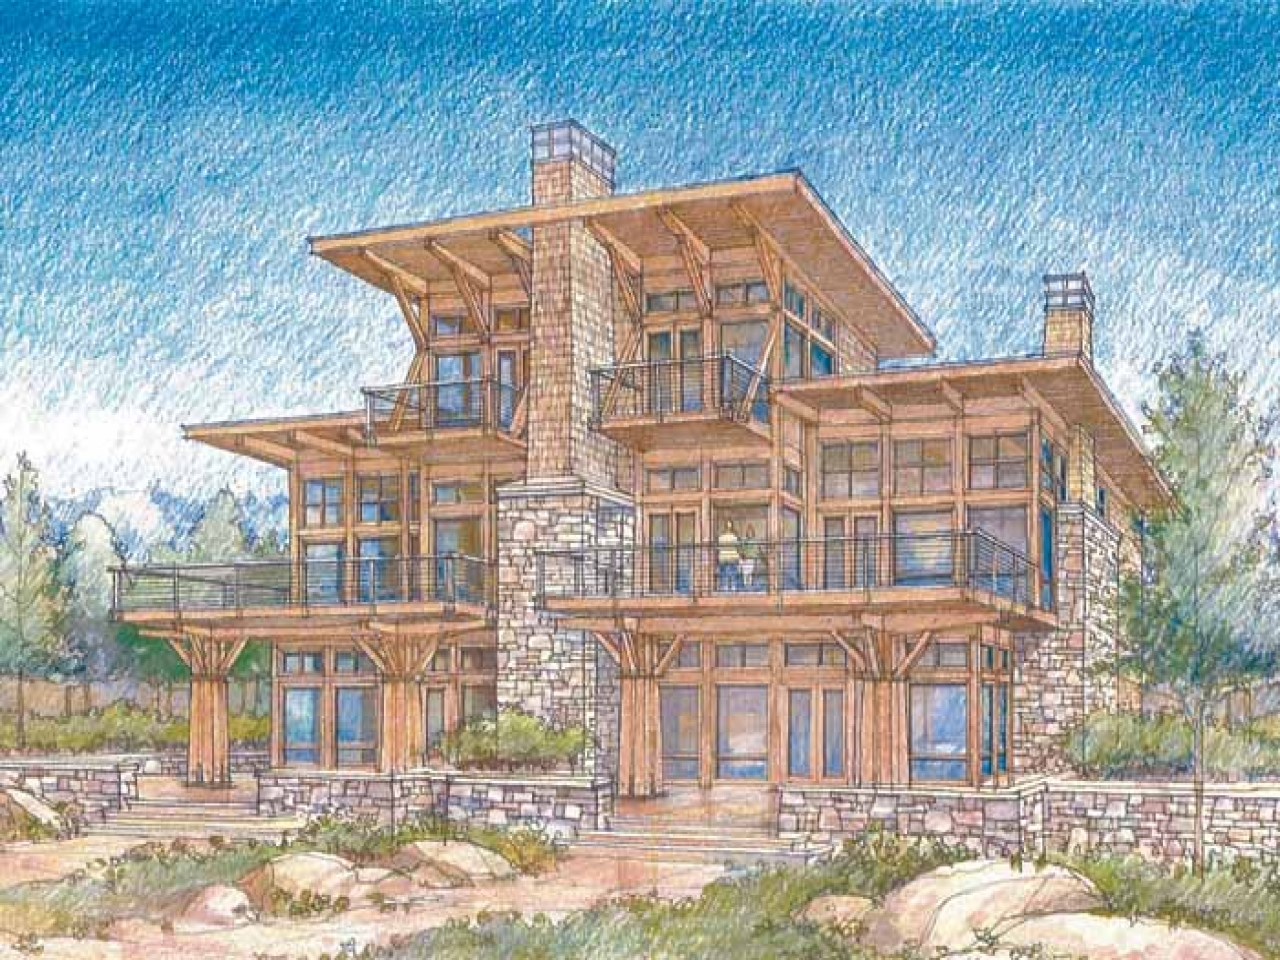 Modern Lake House Designs Waterfront Luxury Home Plans Modern Waterfront House Plans